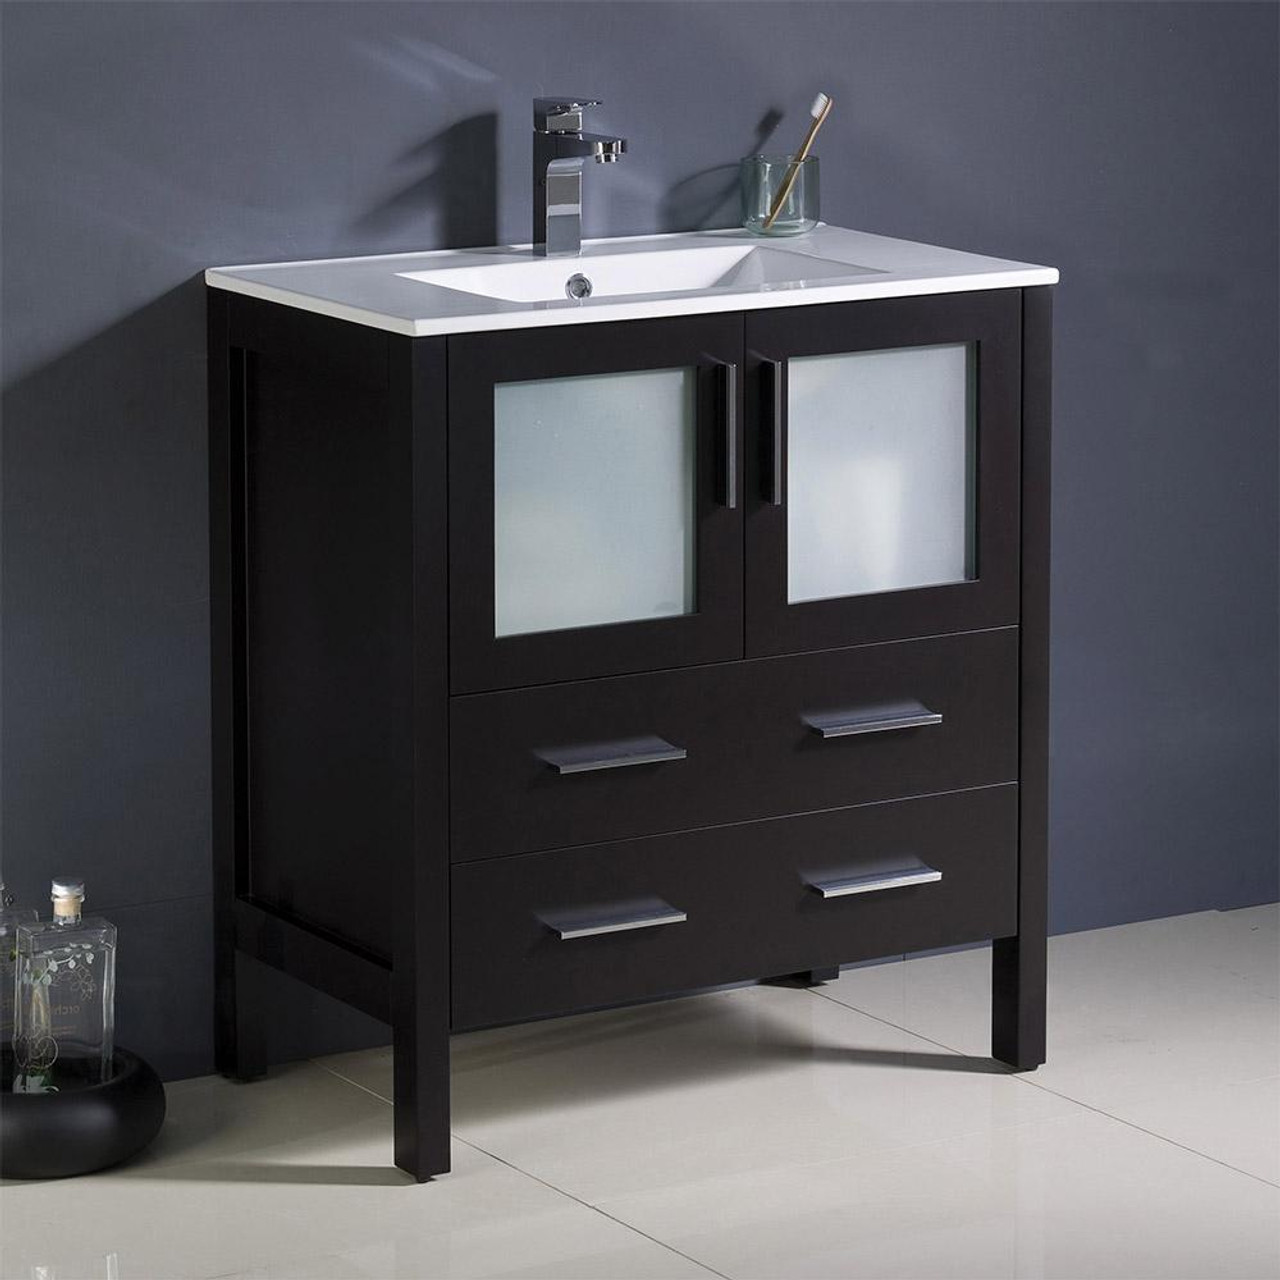 Bello 30 Inch Solid Wood Espresso Bathroom Vanity 50 Off Royal Bath Place